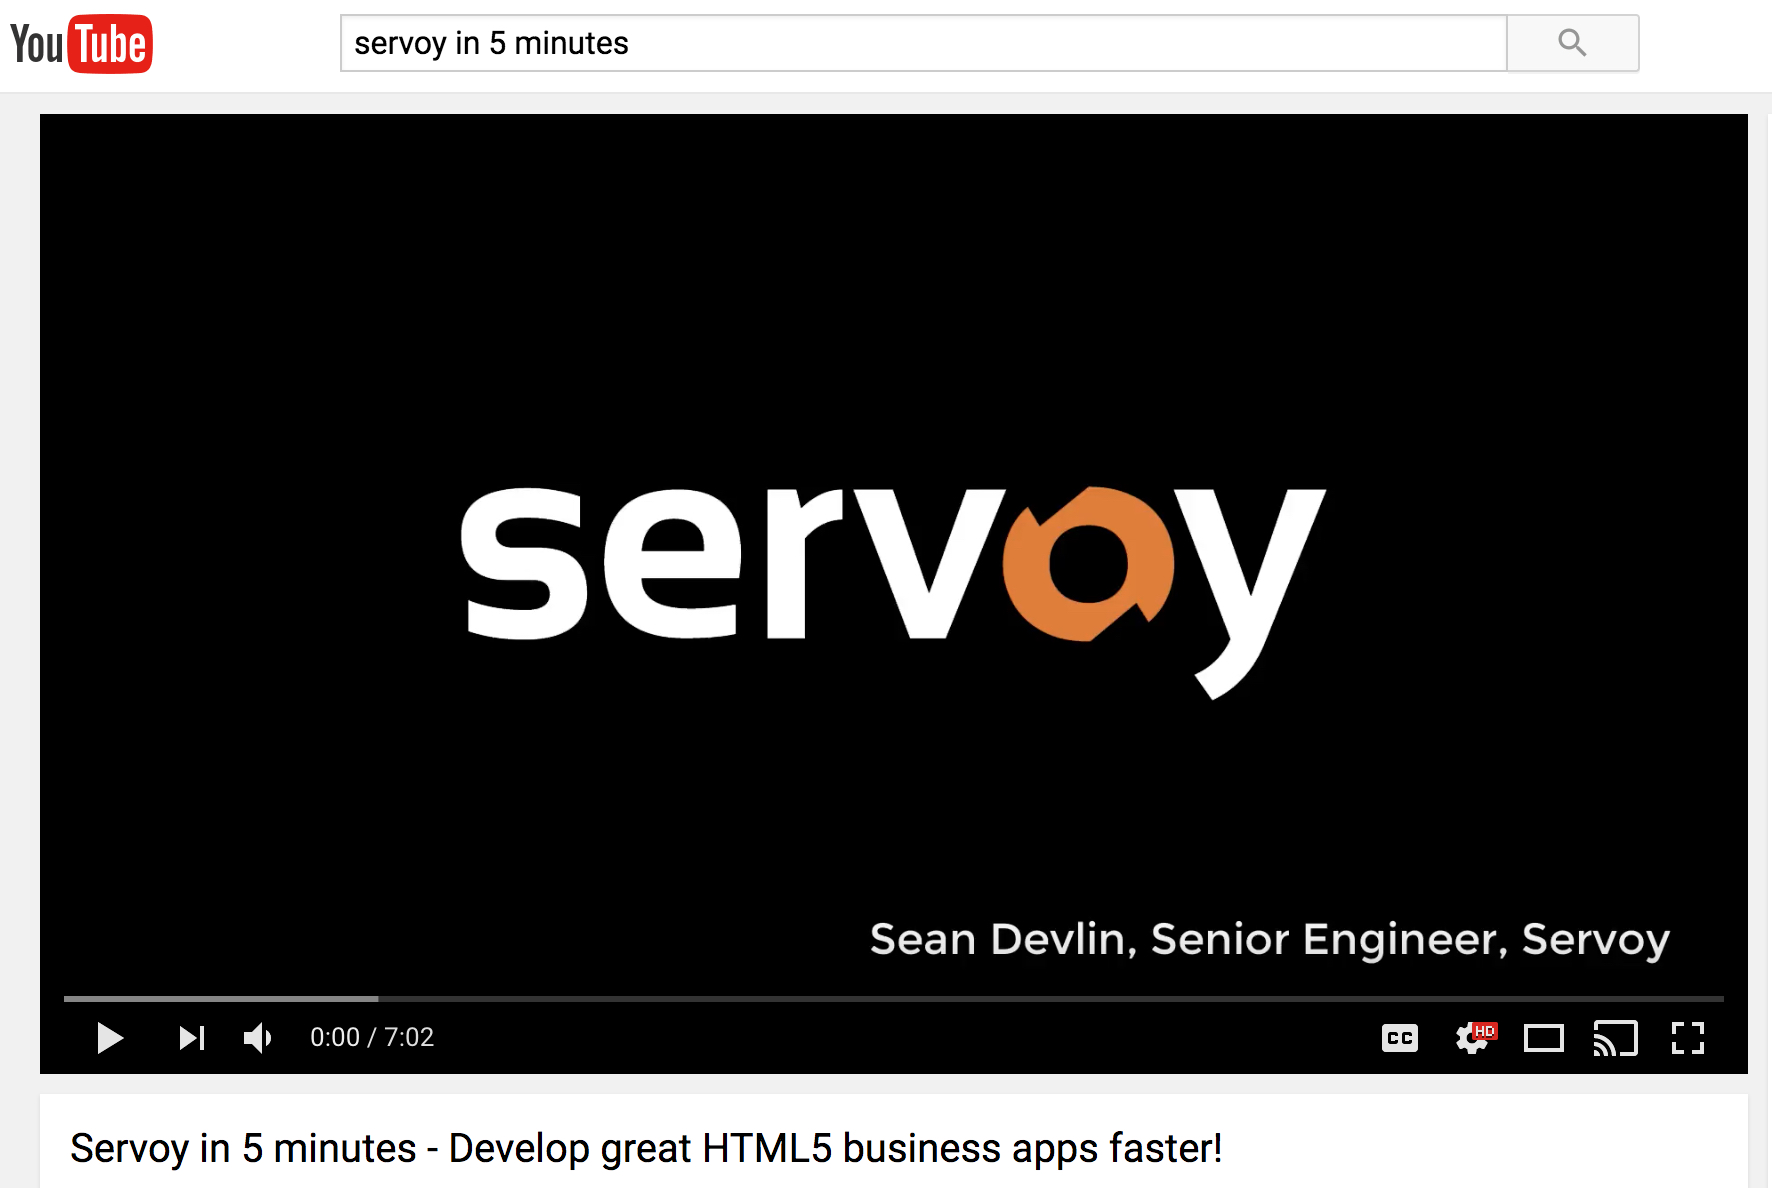 Servoy Demo - Servoy in 5 minutes @ Youtube https://www.youtube.com/watch?v=aZAXWr4C3tI